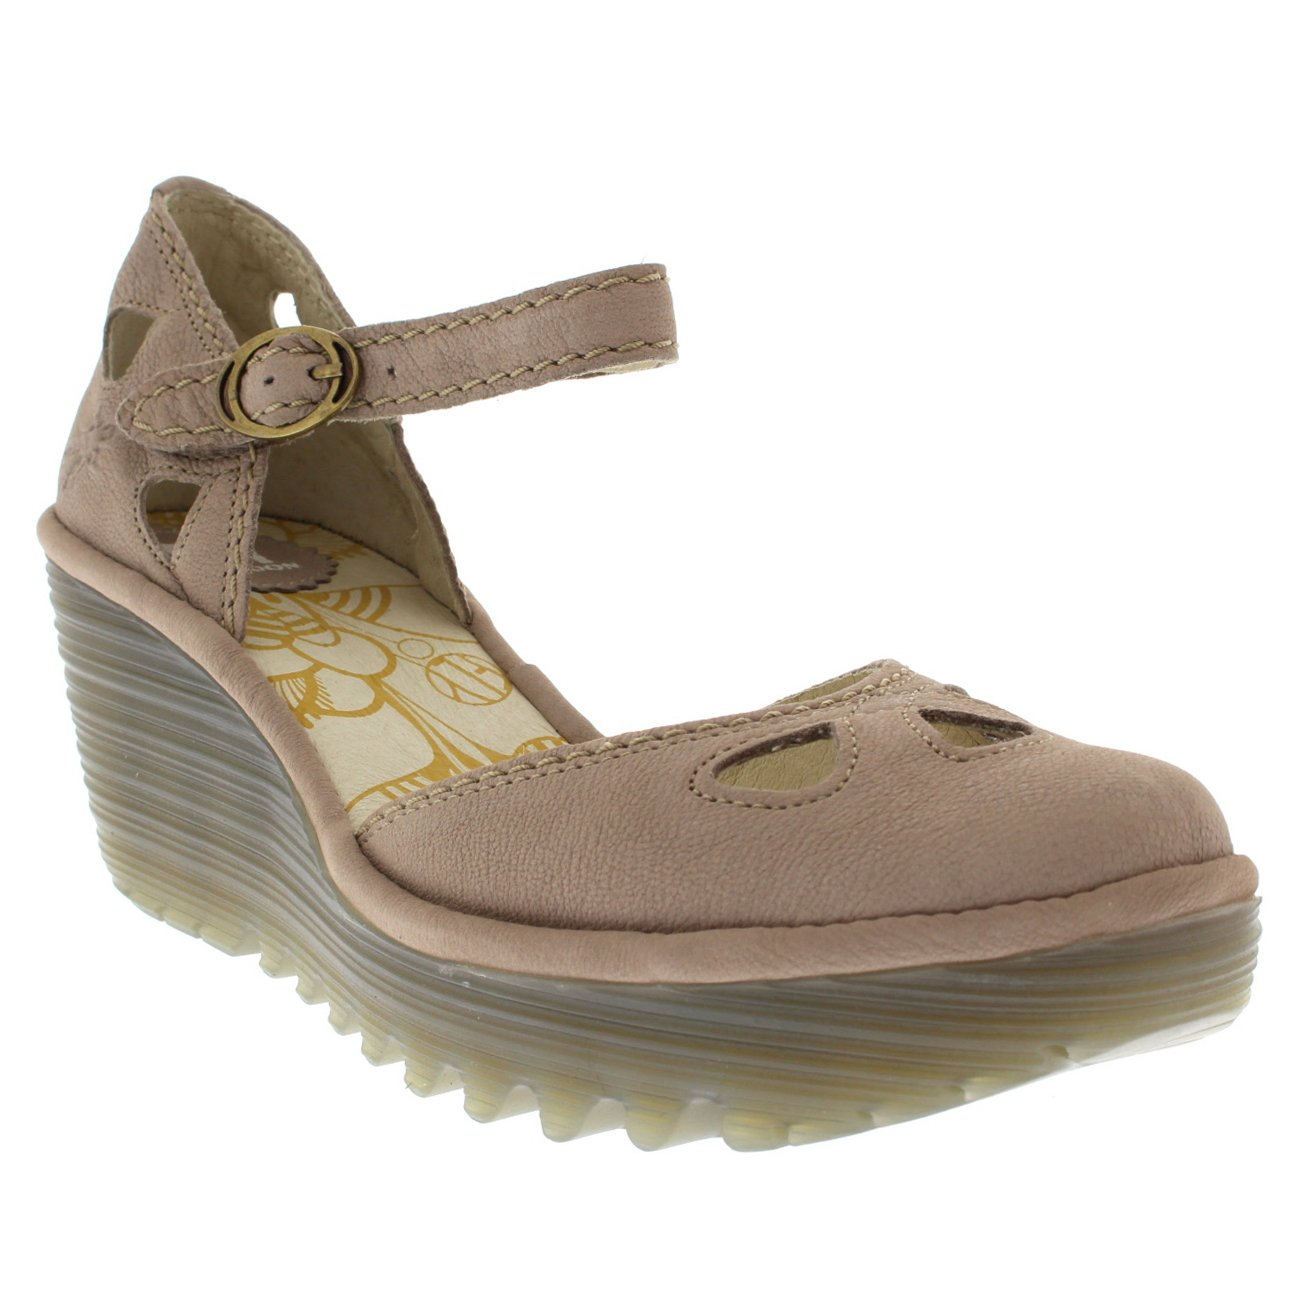 FLY London Womens Yuna Cupido Leather Sandals Summer Shoes Wedge Heel - Concrete - 6 by FLY London (Image #3)